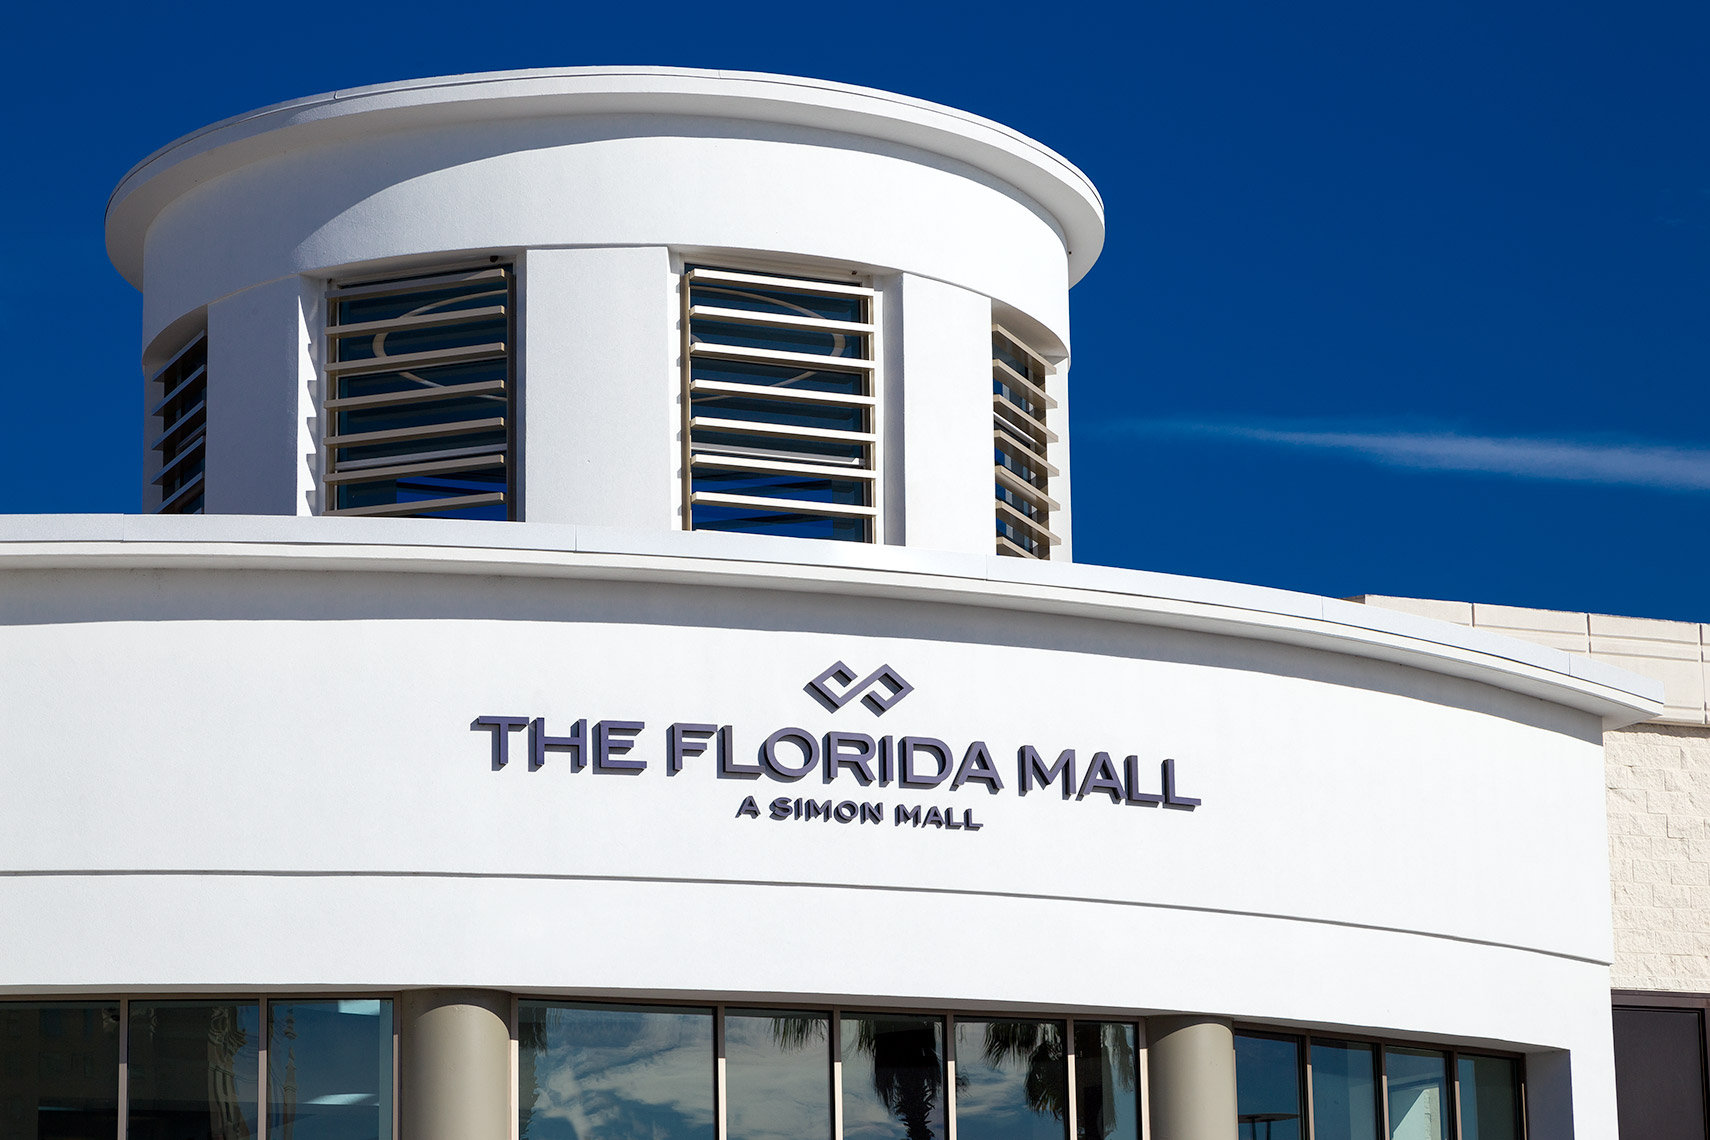 Florida Mall entrance detail